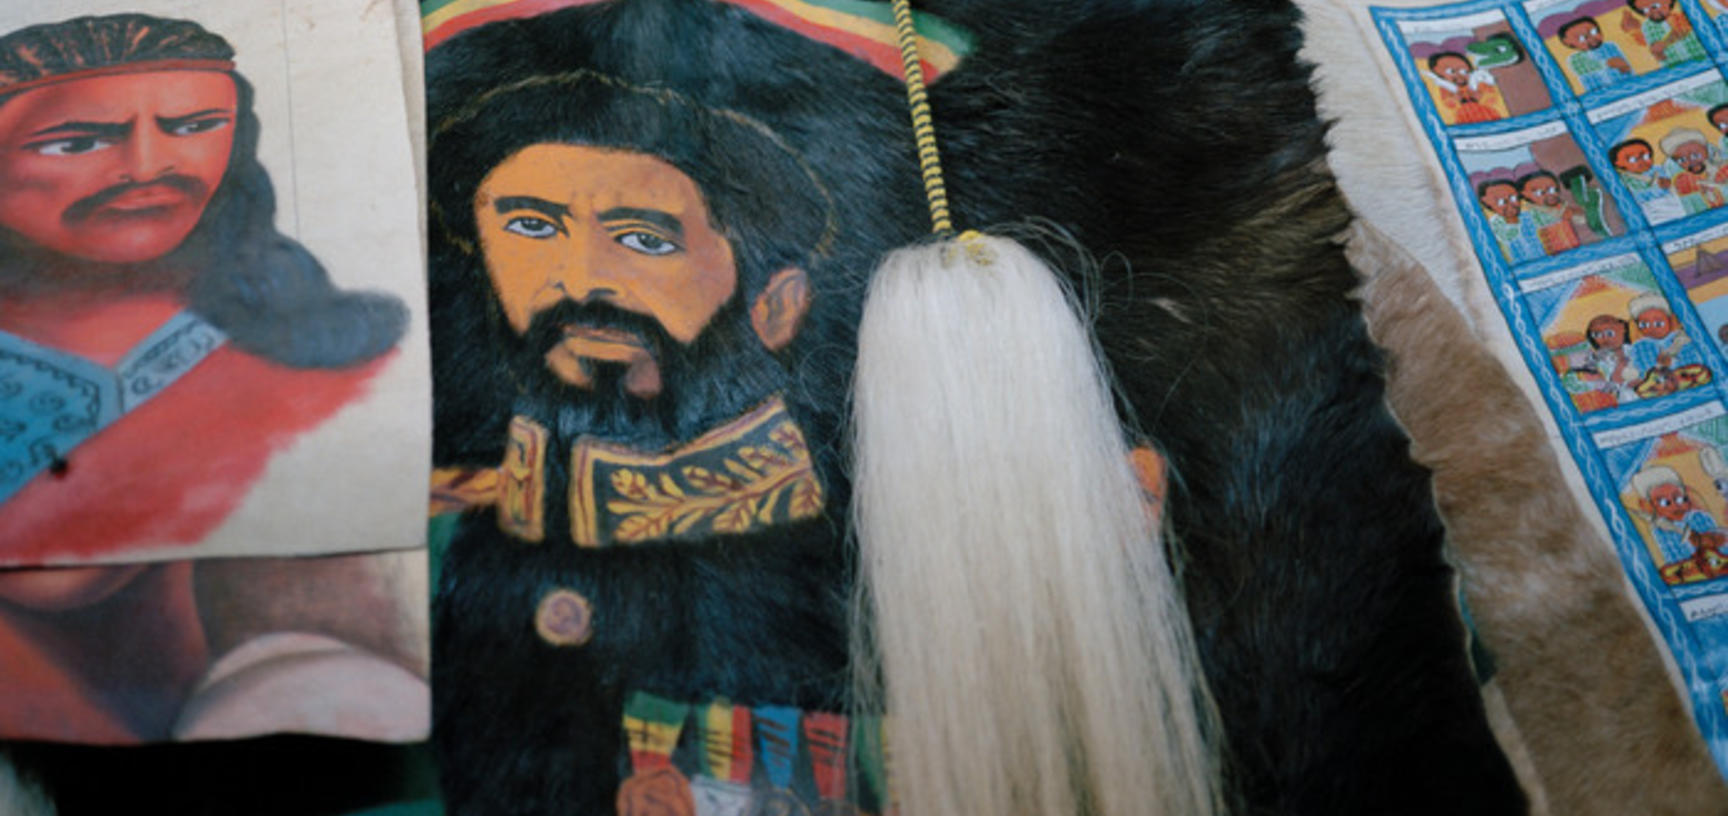 Items for sale in an Addis Ababa shop, including one featuring the image of Haile Selassie with his military decorations. Addis Ababa, Ethiopia. Photograph by Peter Marlow. 2000.